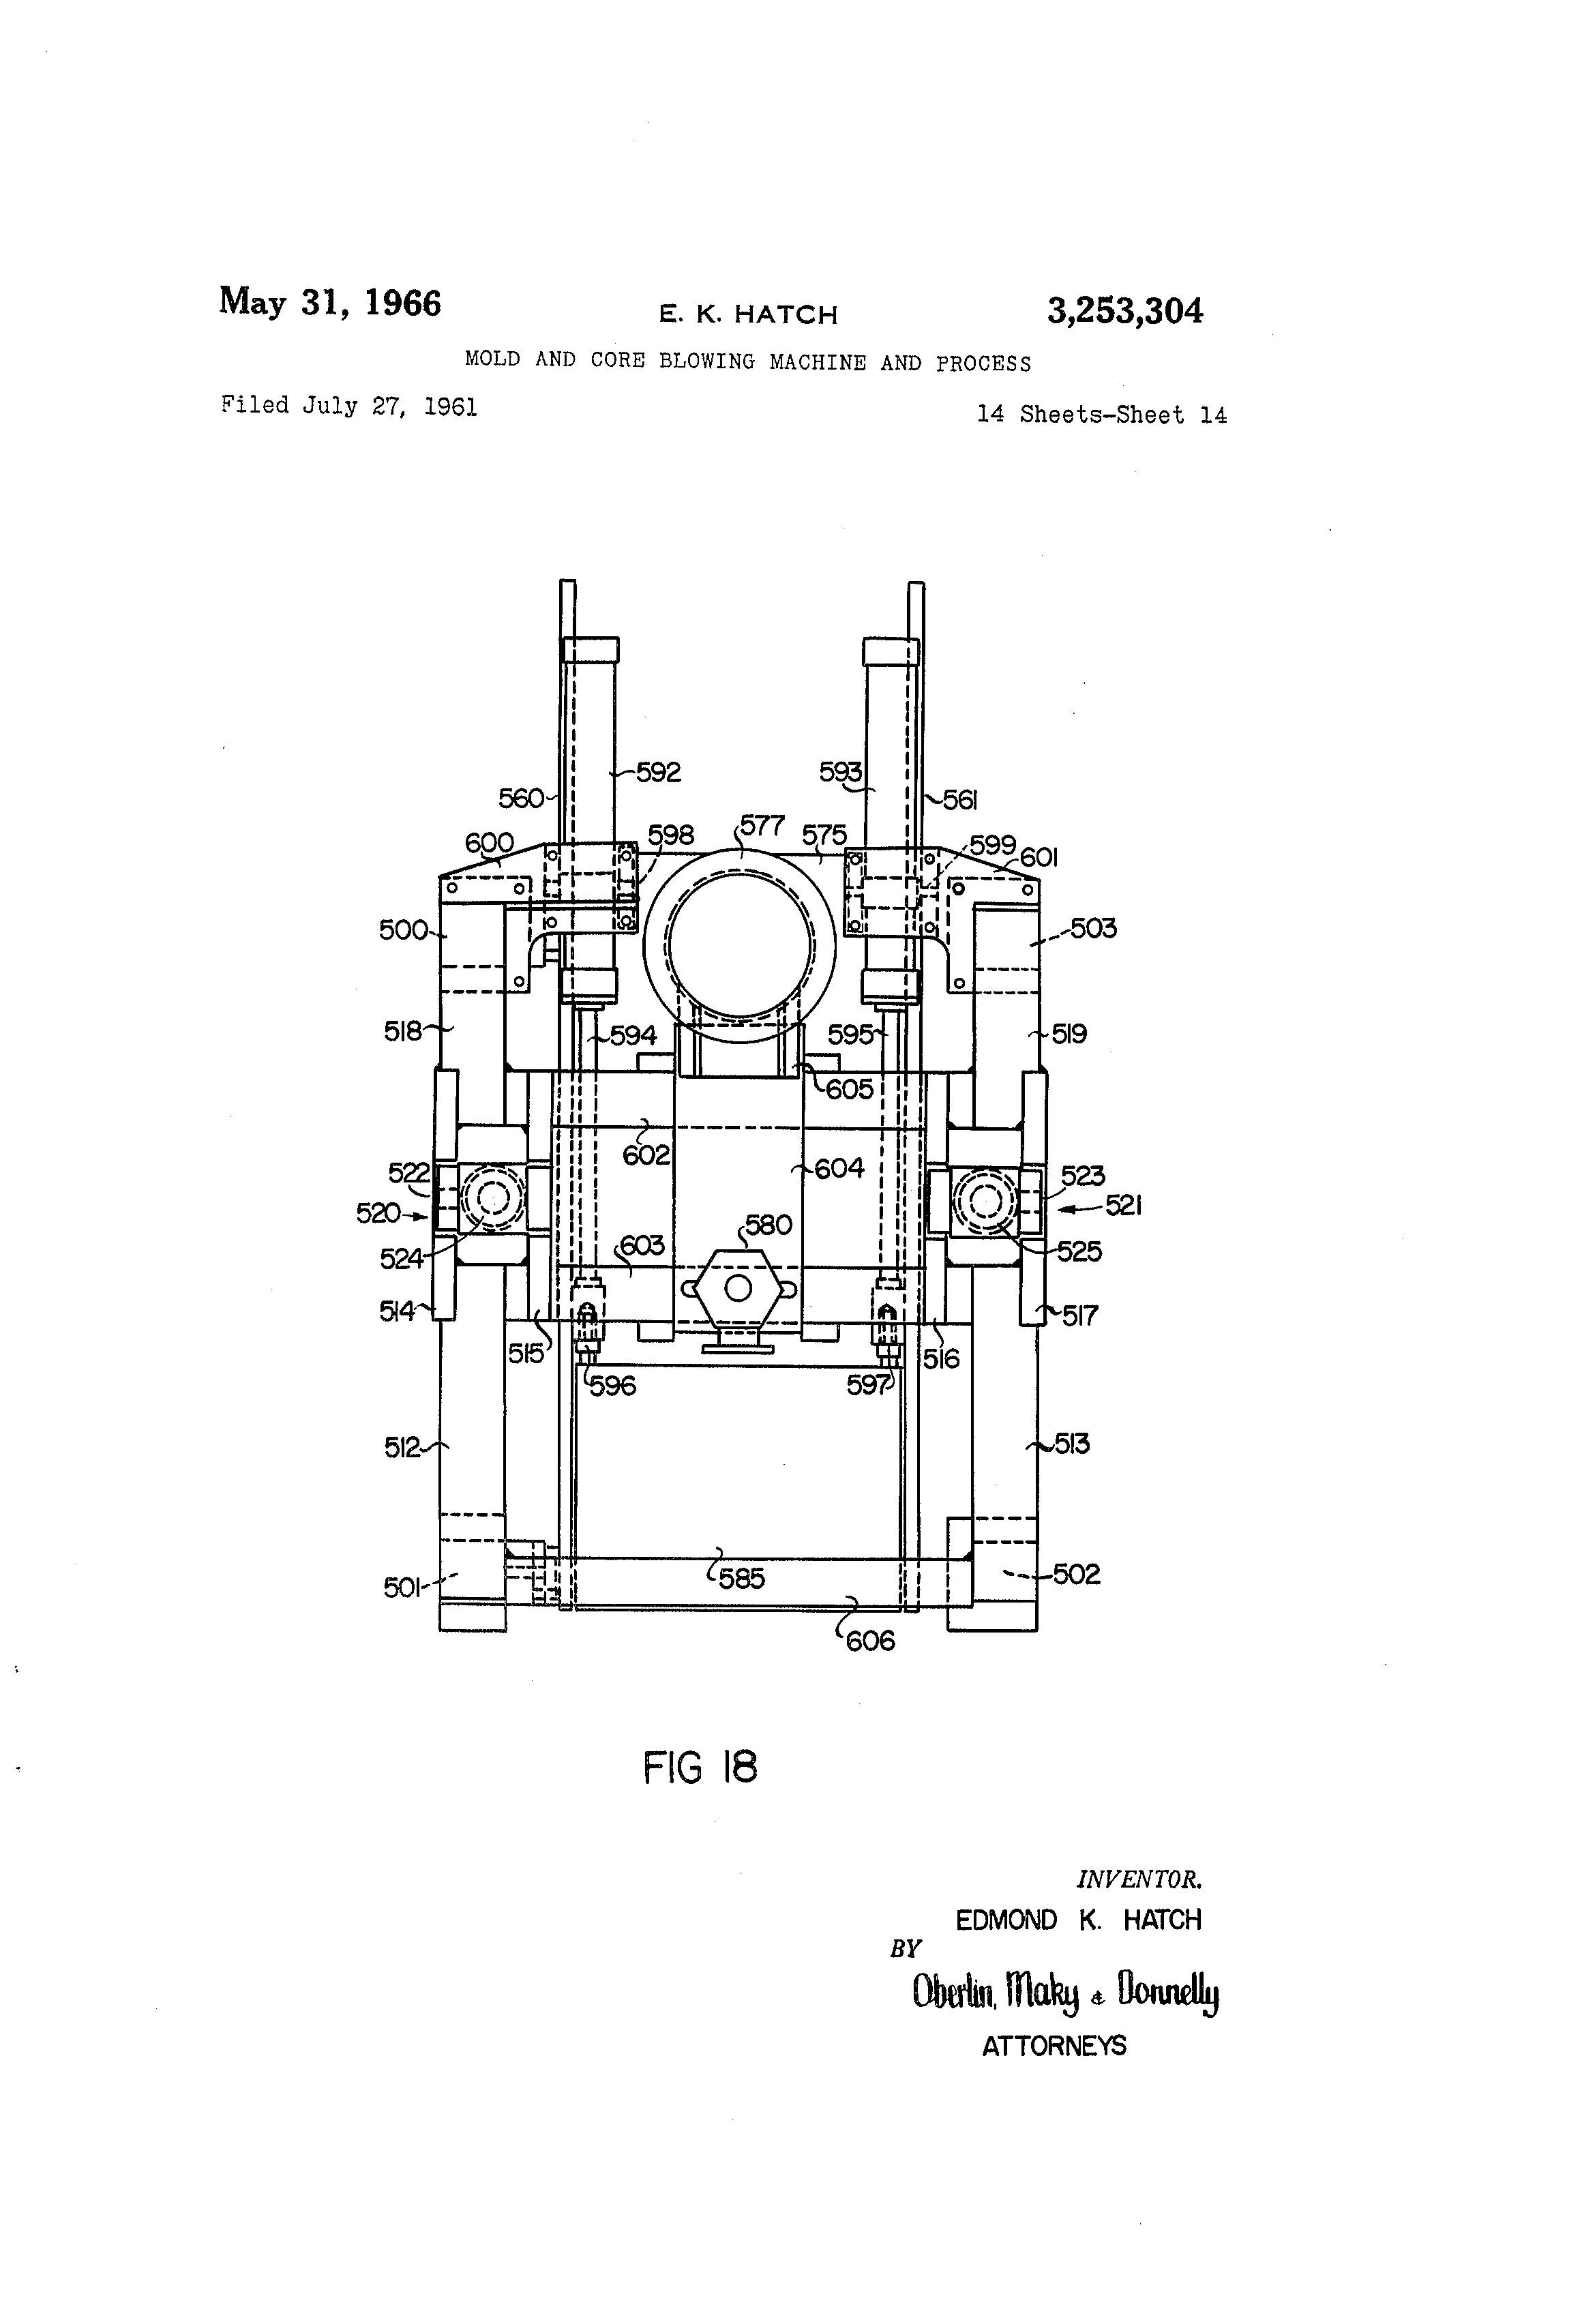 US3253304 13 patent us3253304 mold and core blowing machine and process  at n-0.co